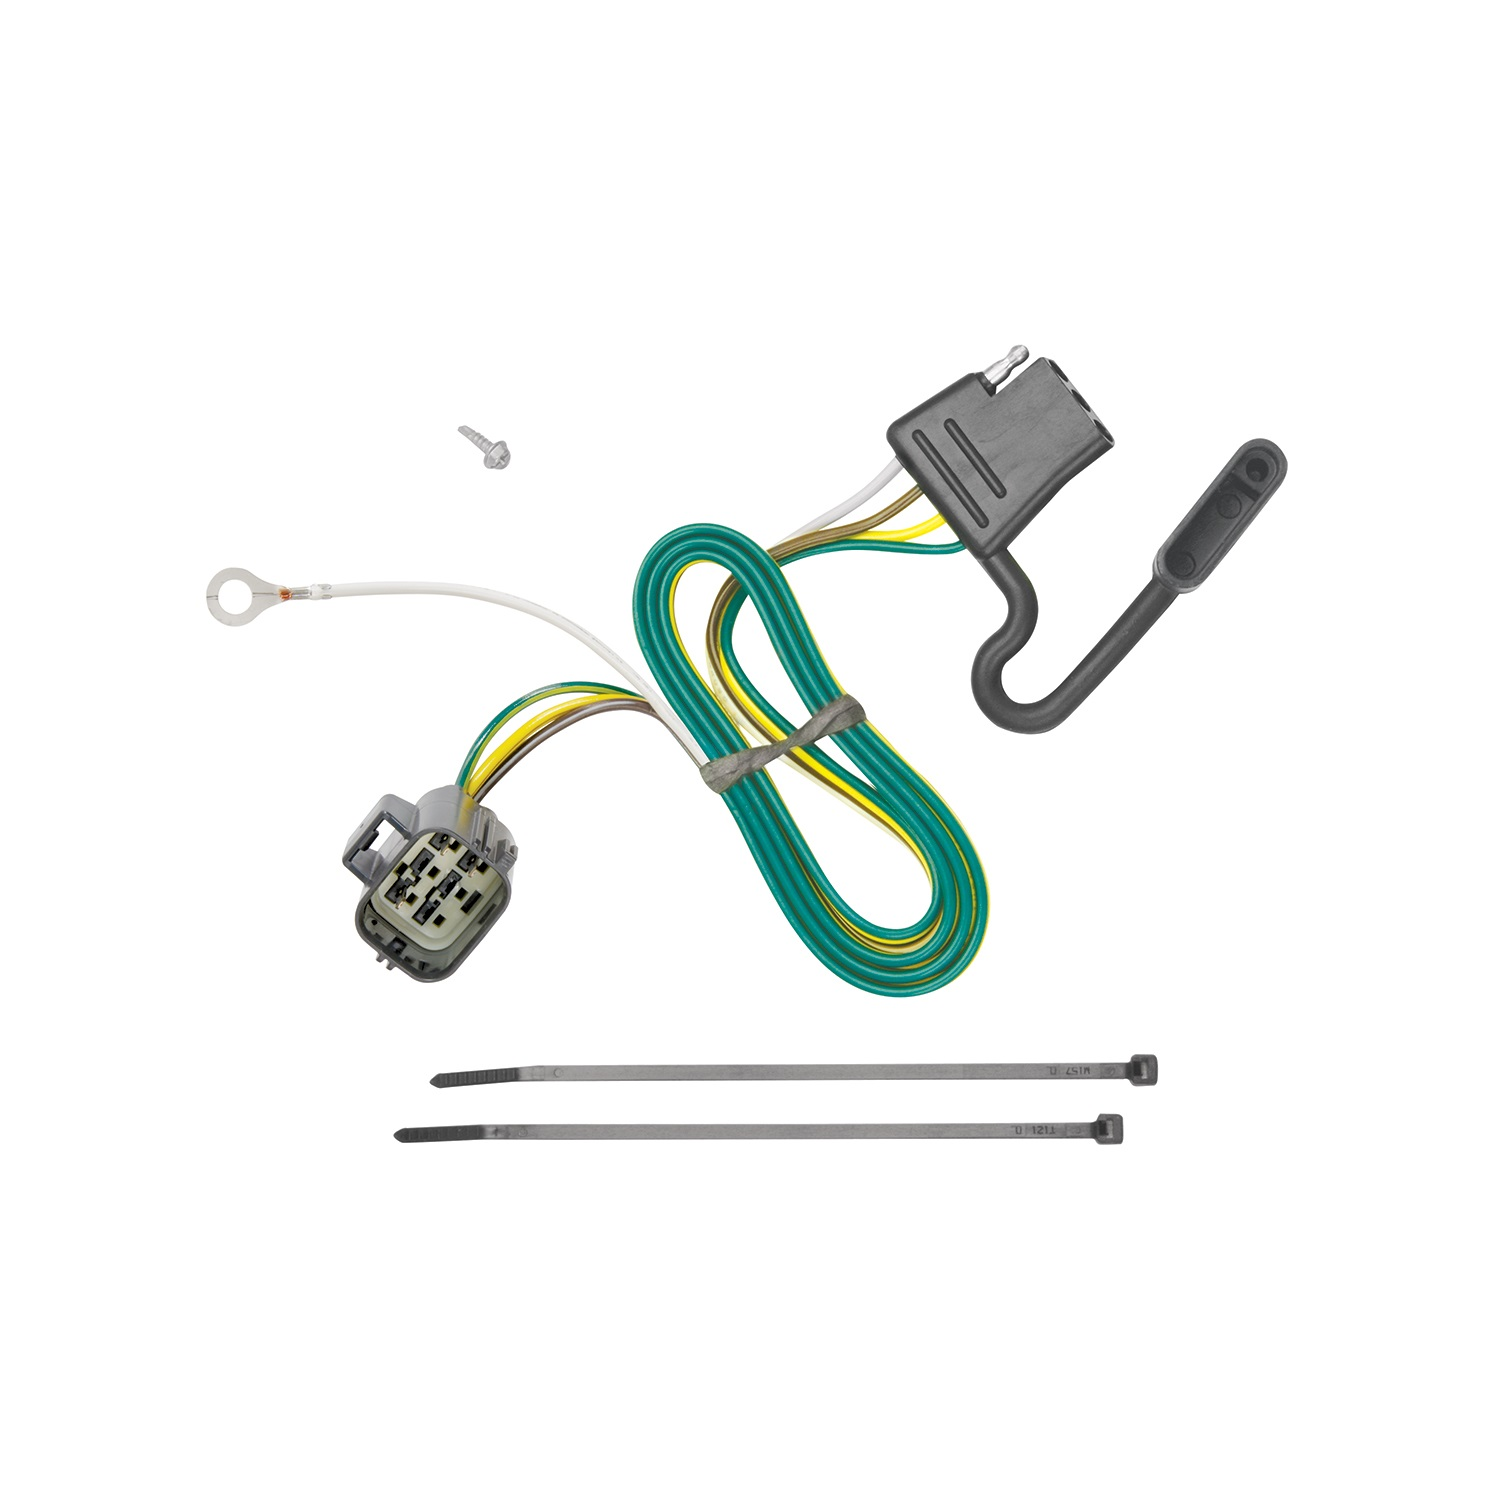 Tekonsha T-One Trailer to Vehicle Wiring Kit Connector Assembly 118681